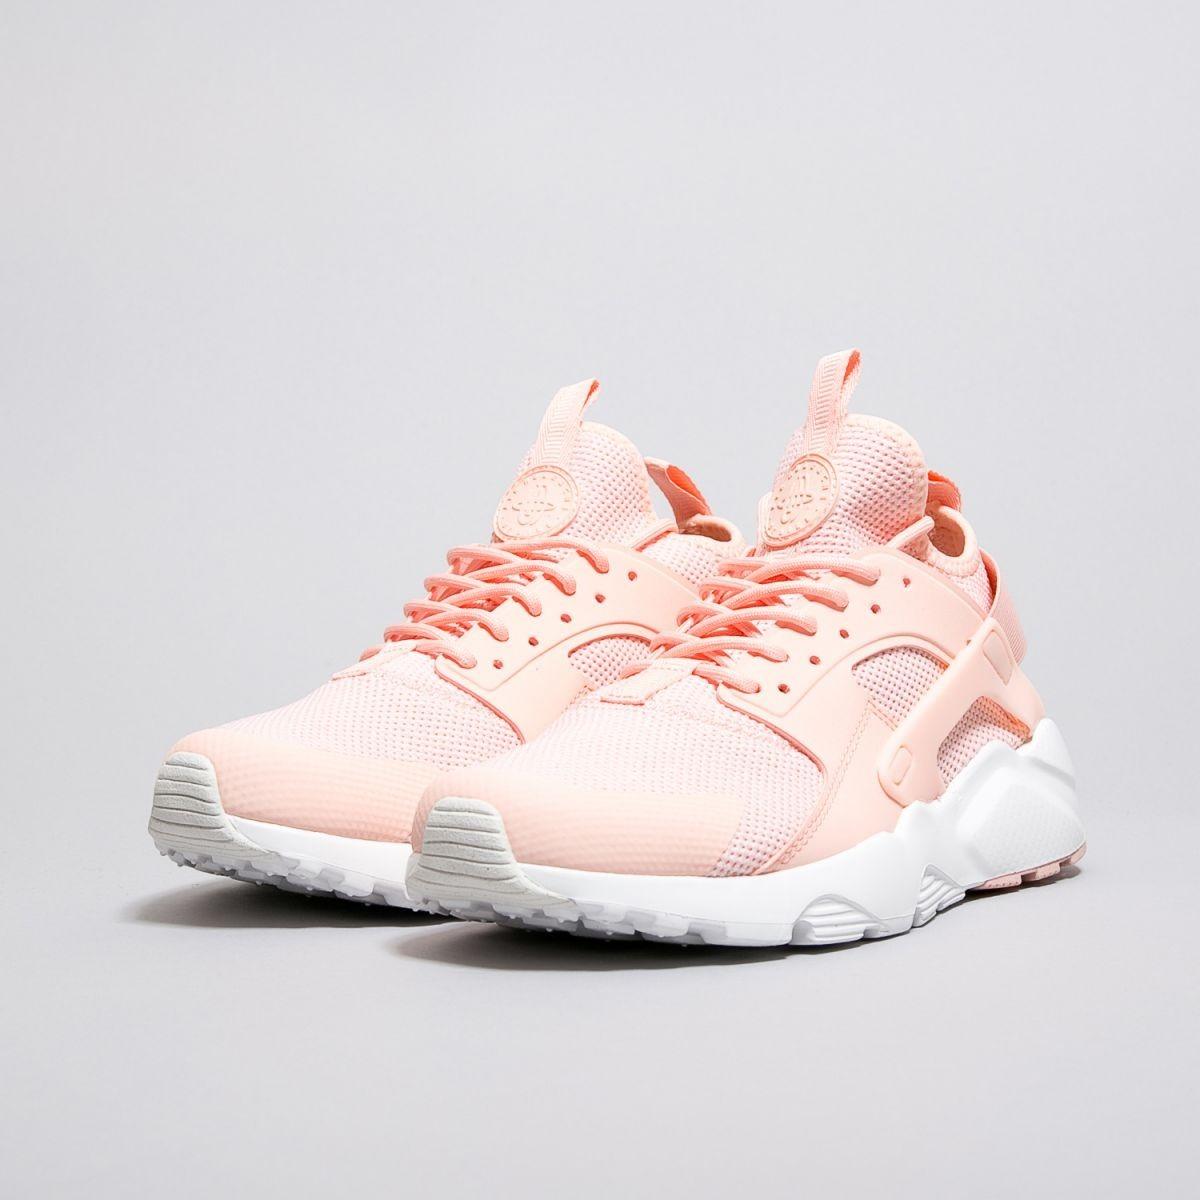 dc29fb23d57 324d7 7420d  cheap zapatillas nike air huarache ultra rosa dama. cargando  zoom. e721a 4766d